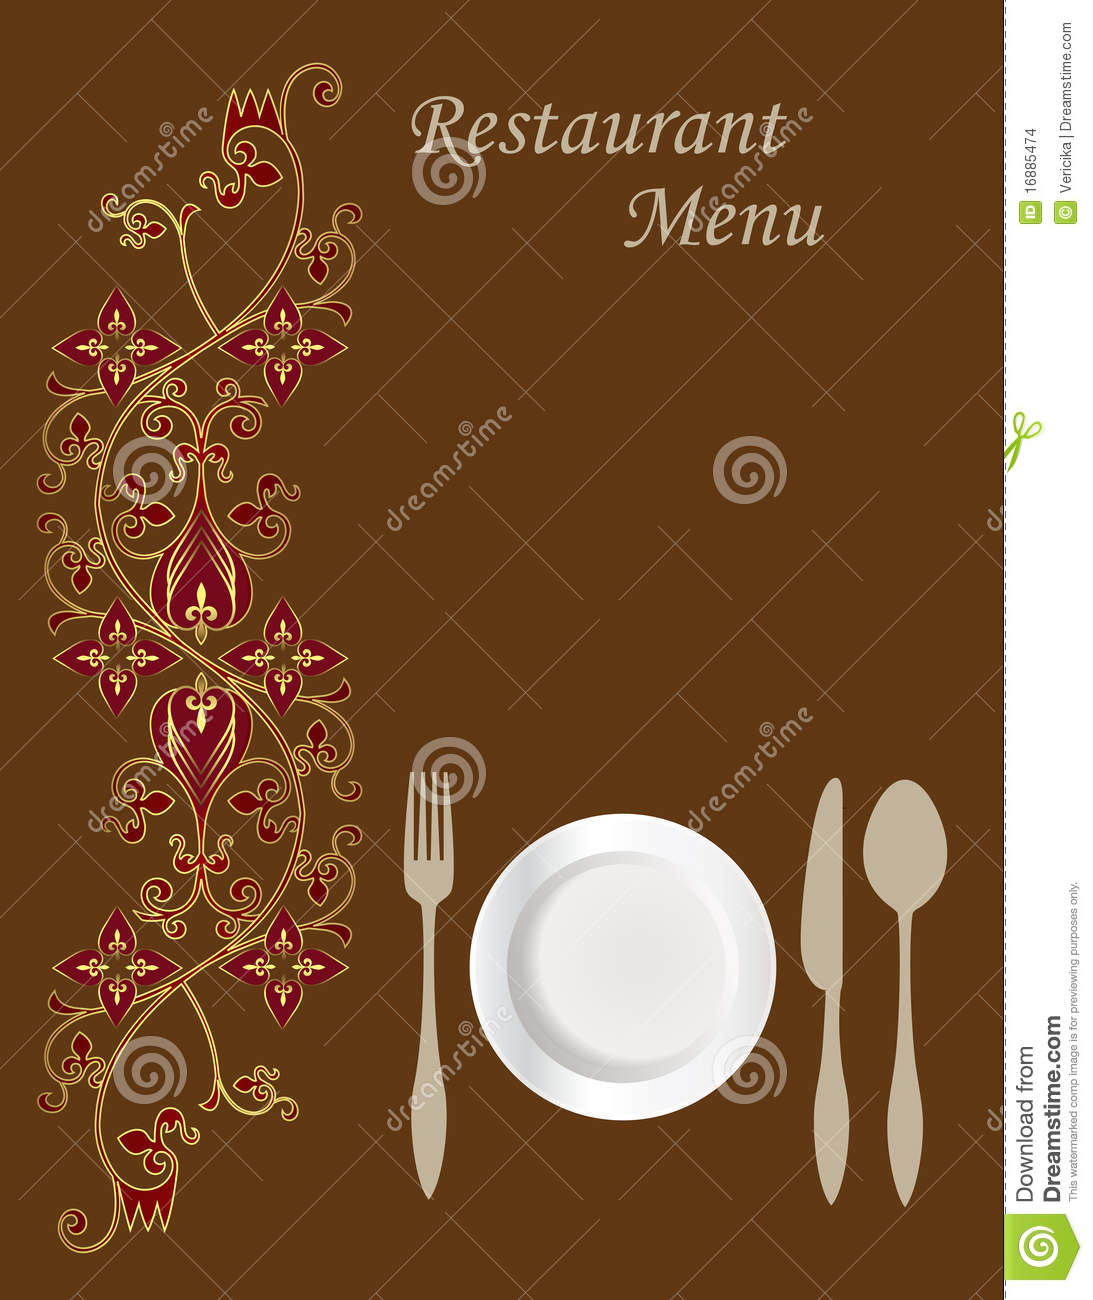 Menu card design stock images image 16885474 Create a blueprint